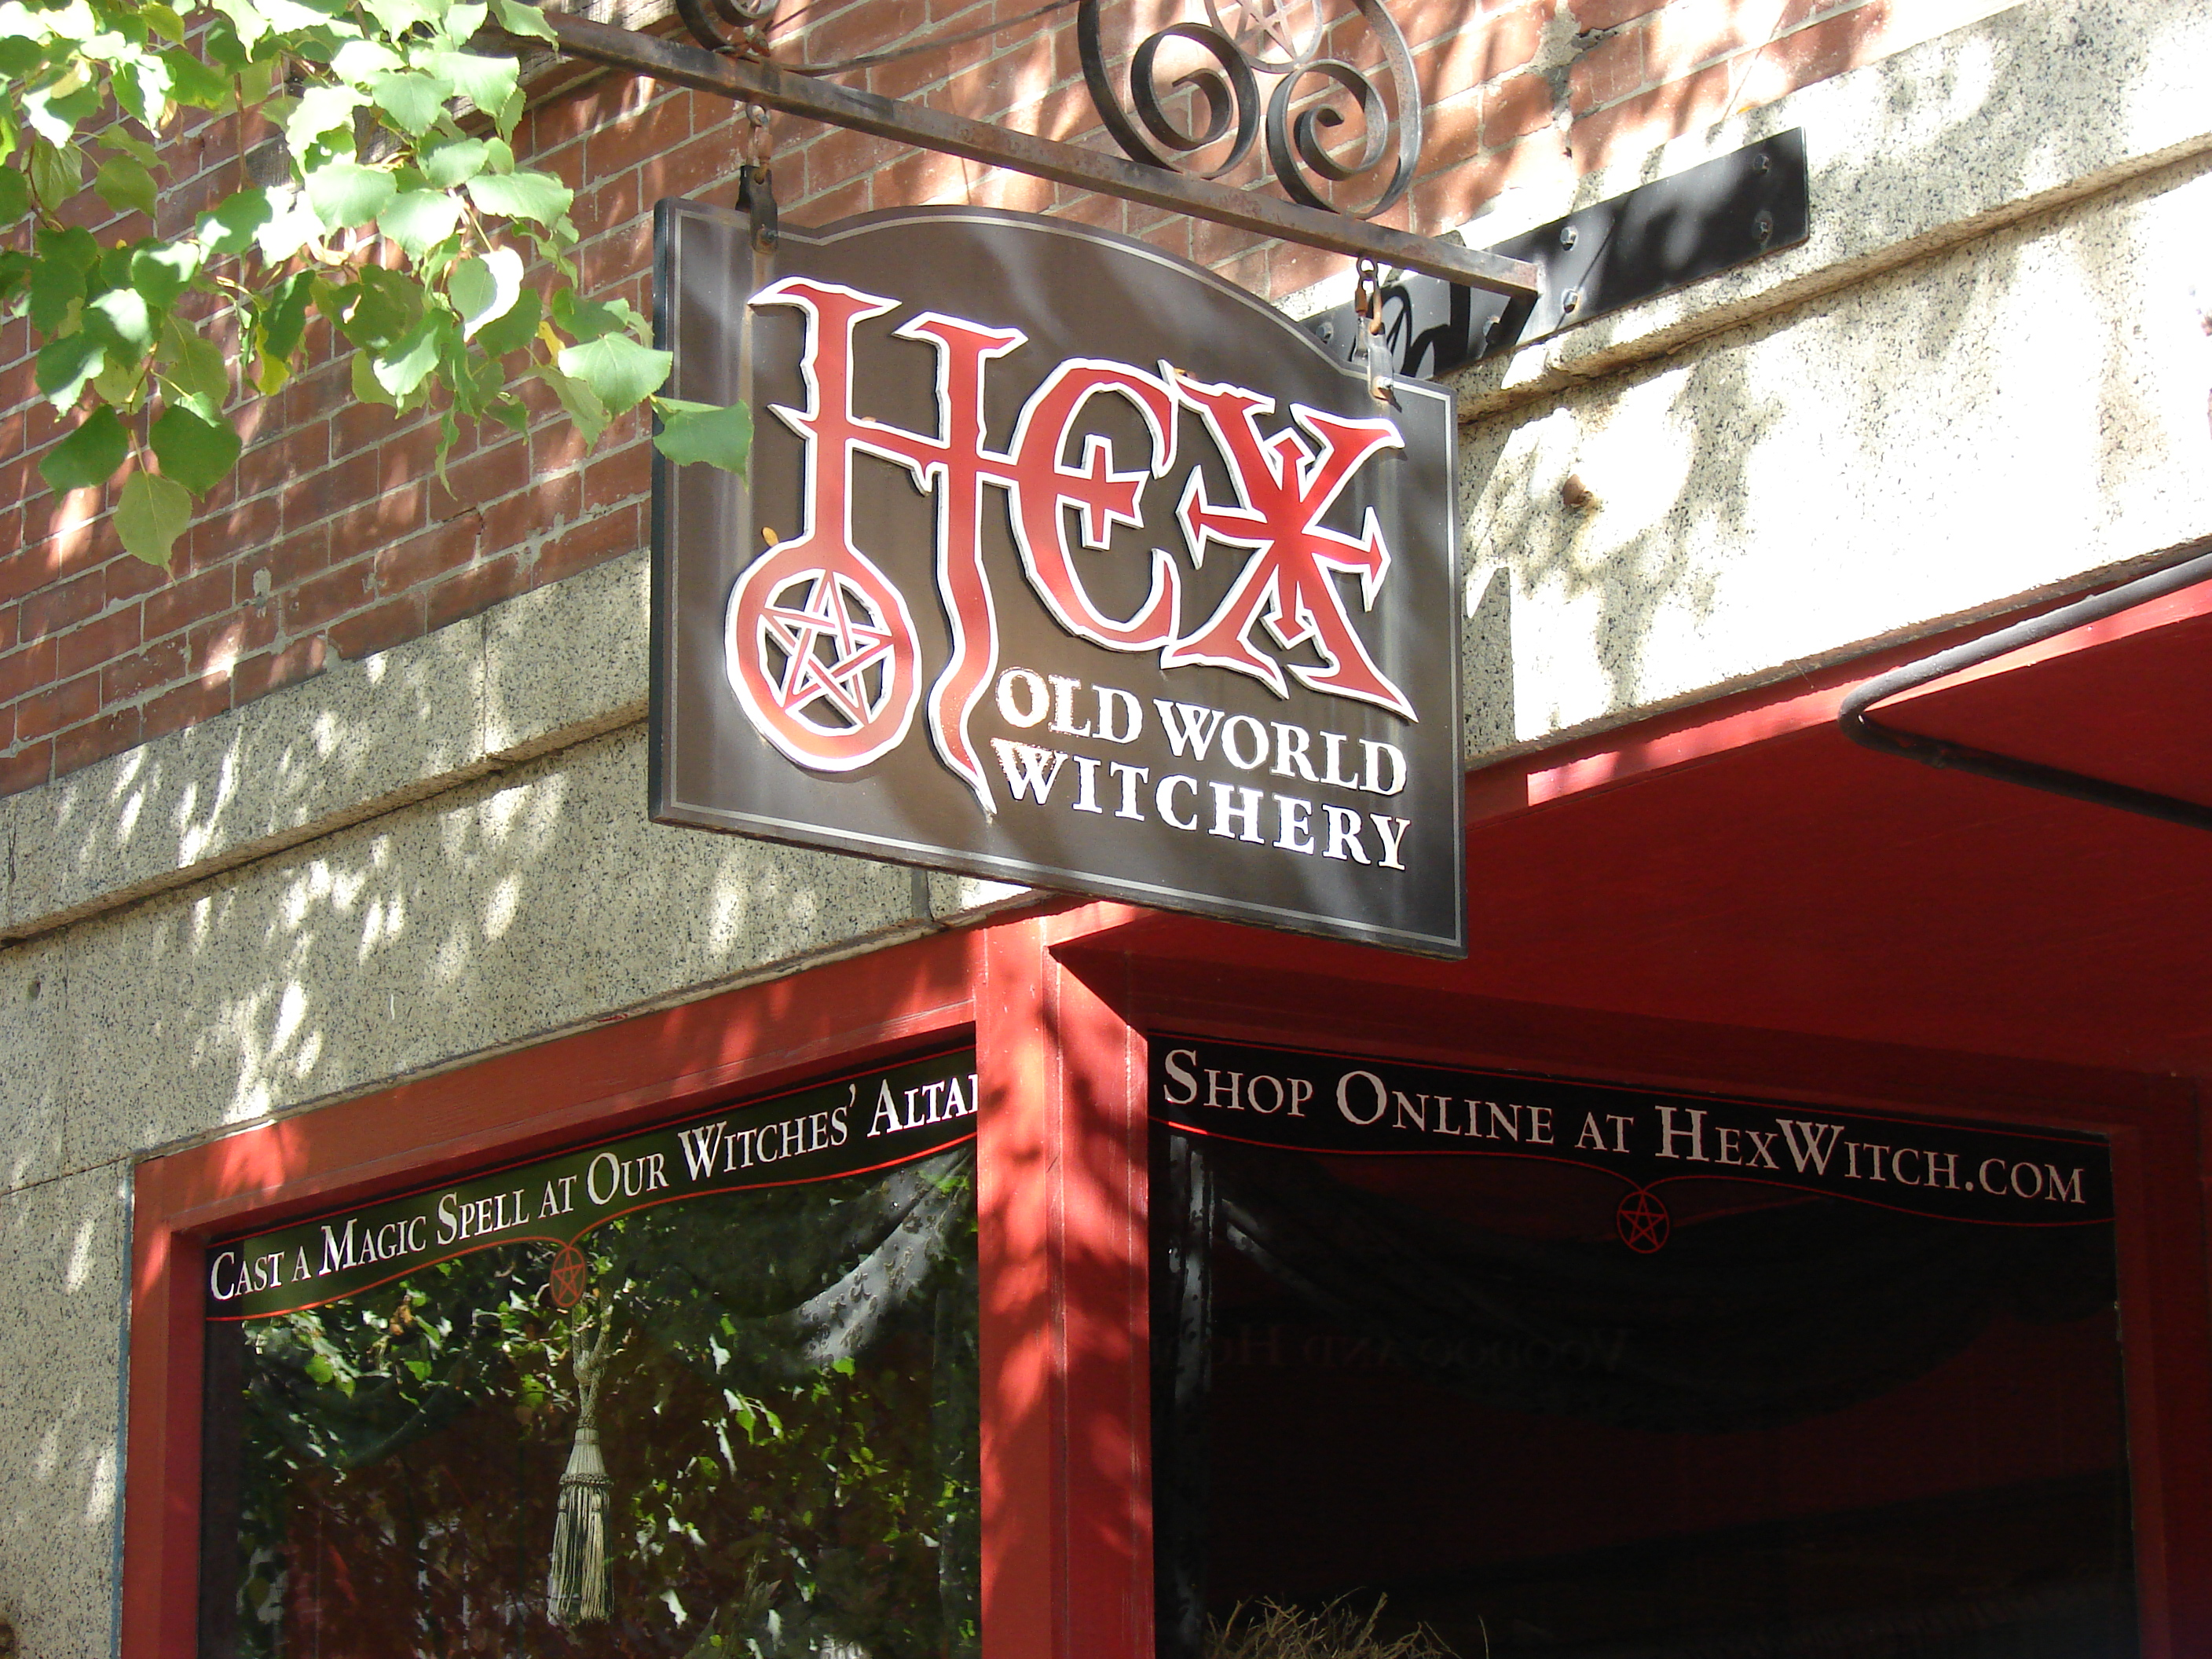 Hex Witch Shop